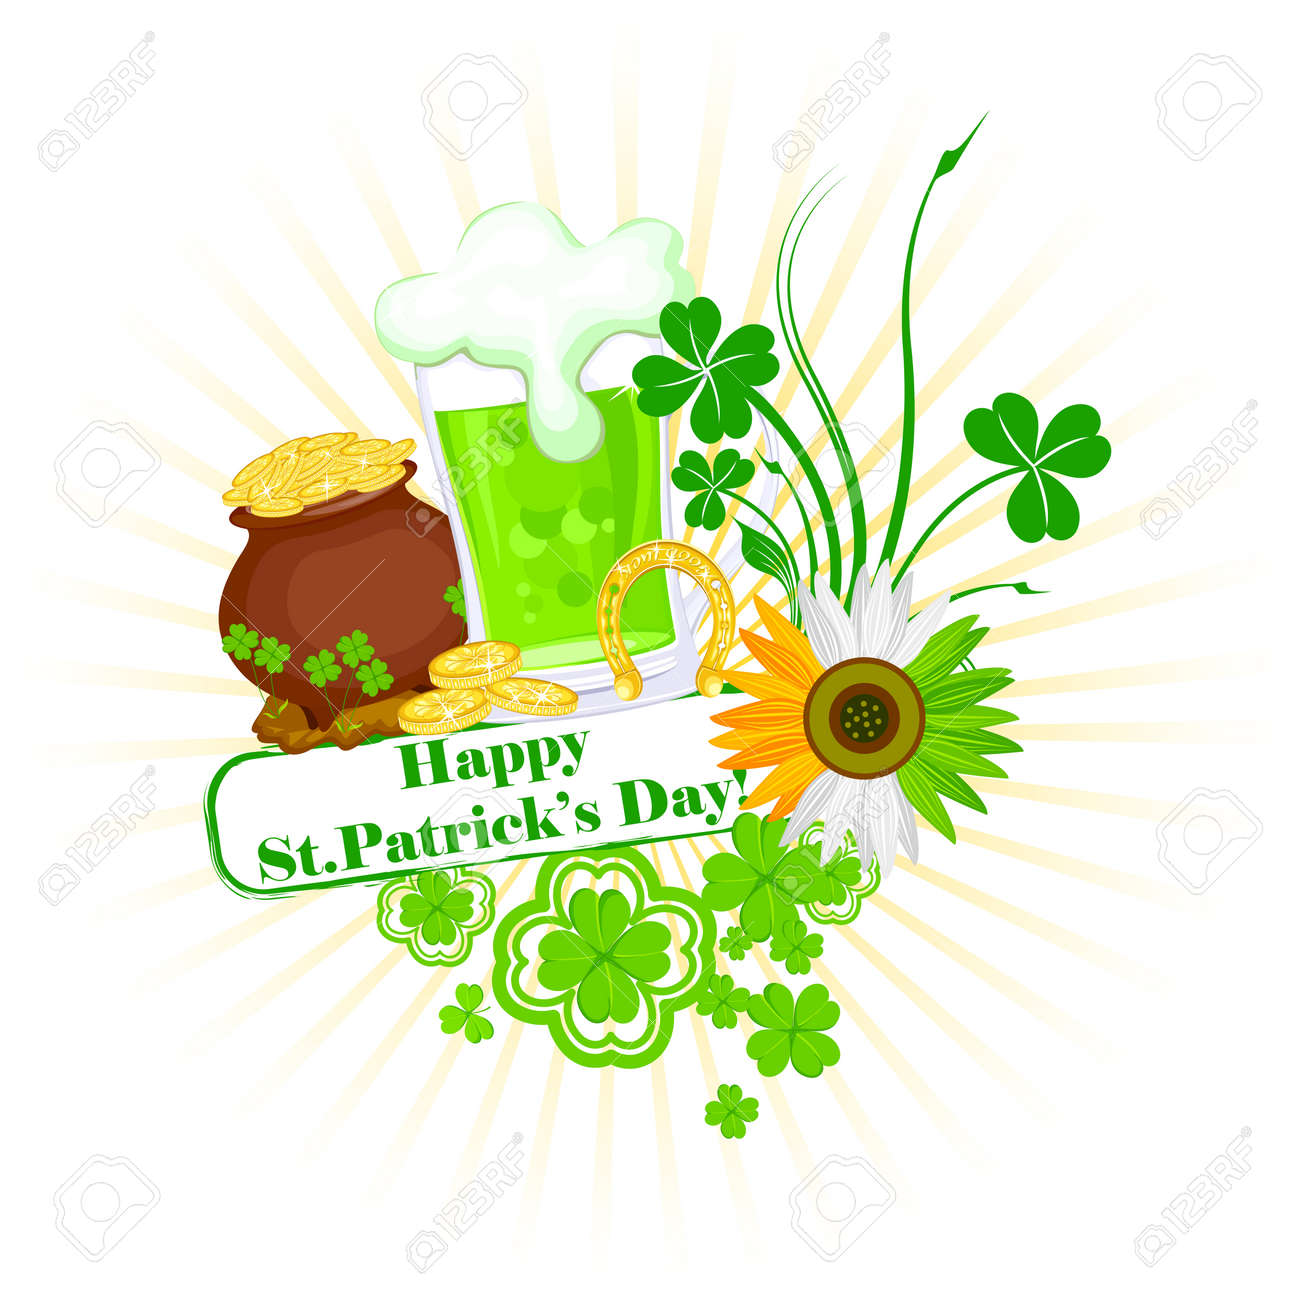 easy to edit vector illustration of Saint Patrick's Day Stock Vector - 25664024